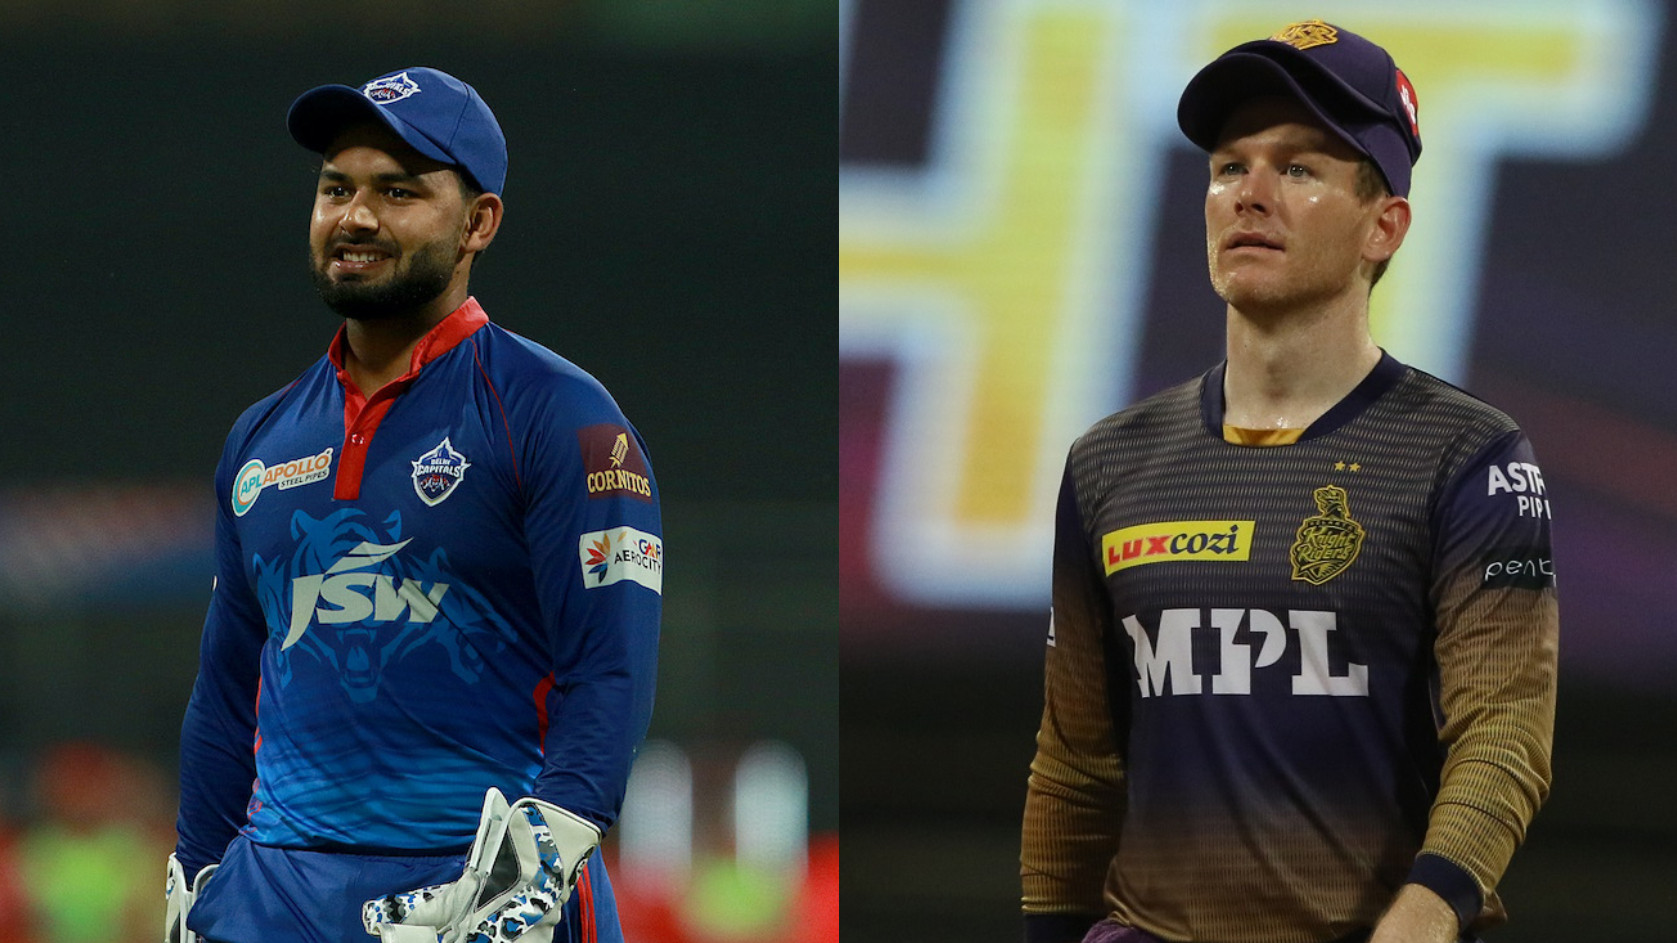 IPL 2021: Match 25, DC v KKR – COC Predicted Playing XIs